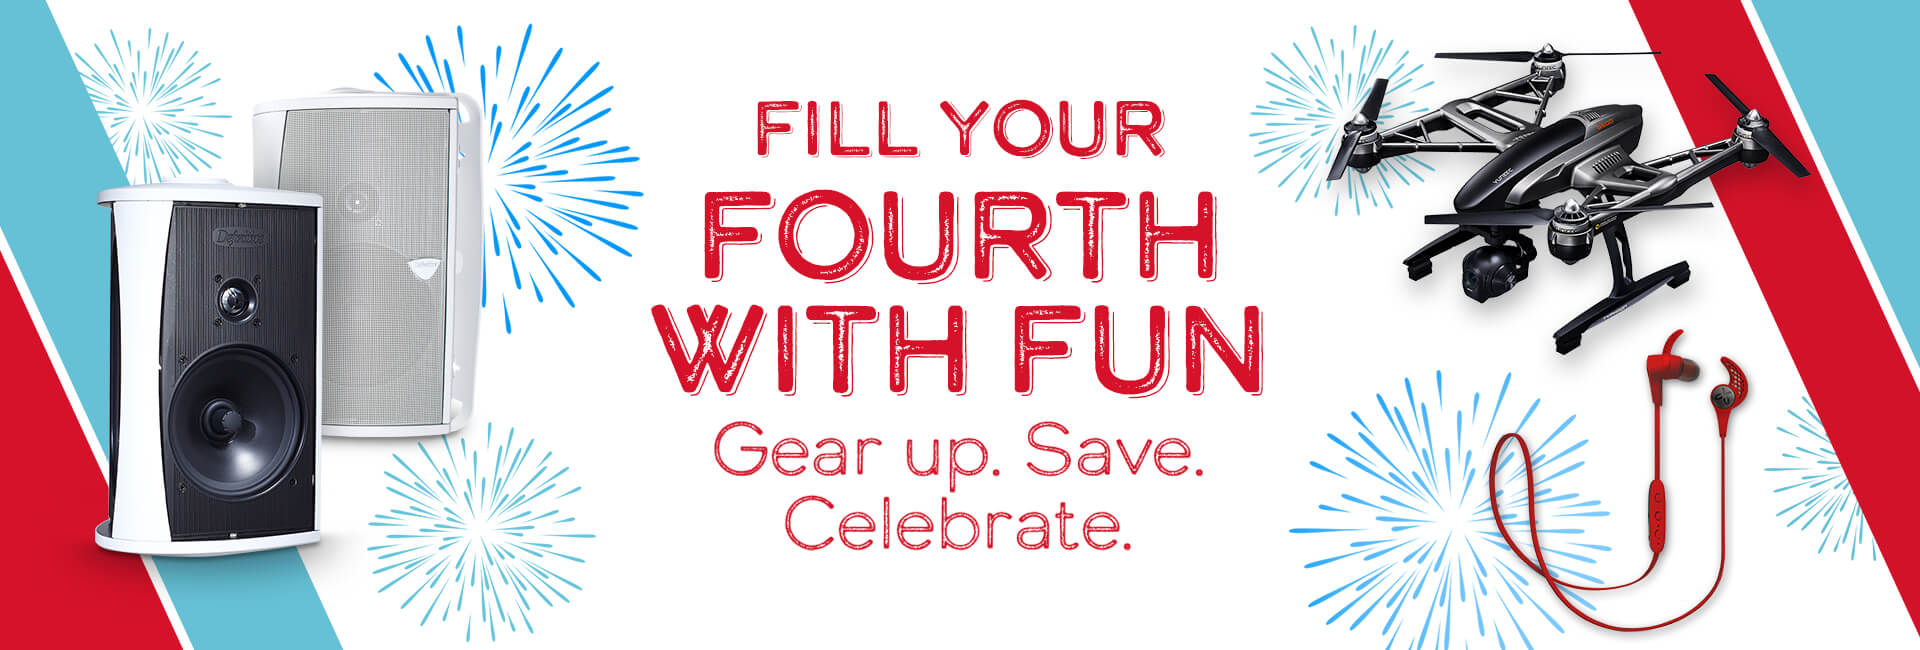 Fill your fourth with fun